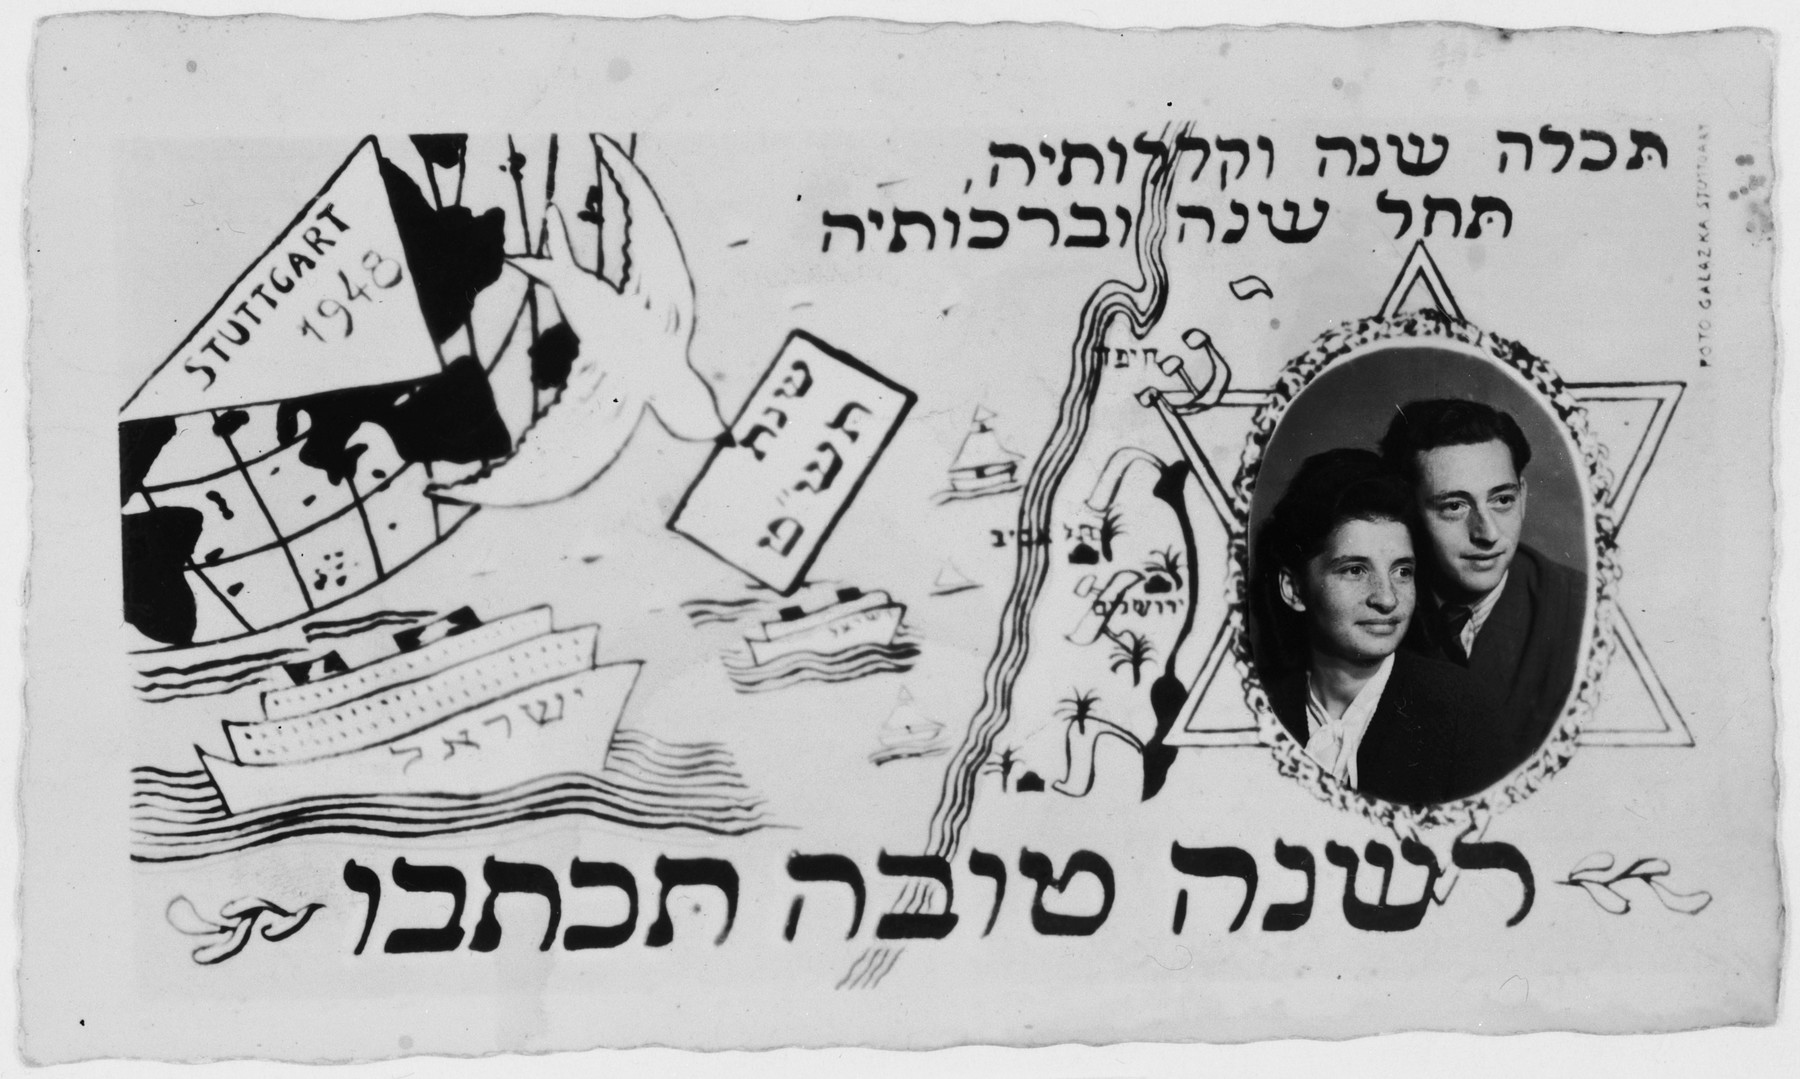 Personalized Jewish New Years card sent by Fela and Natan Gipsman, a Jewish DP couple living in Stuttgart, Germany.  The card is decorated with a map of Israel and a boat labeled with the Hebrew word for Israel, a reference to the newly declared independant State of Israel.